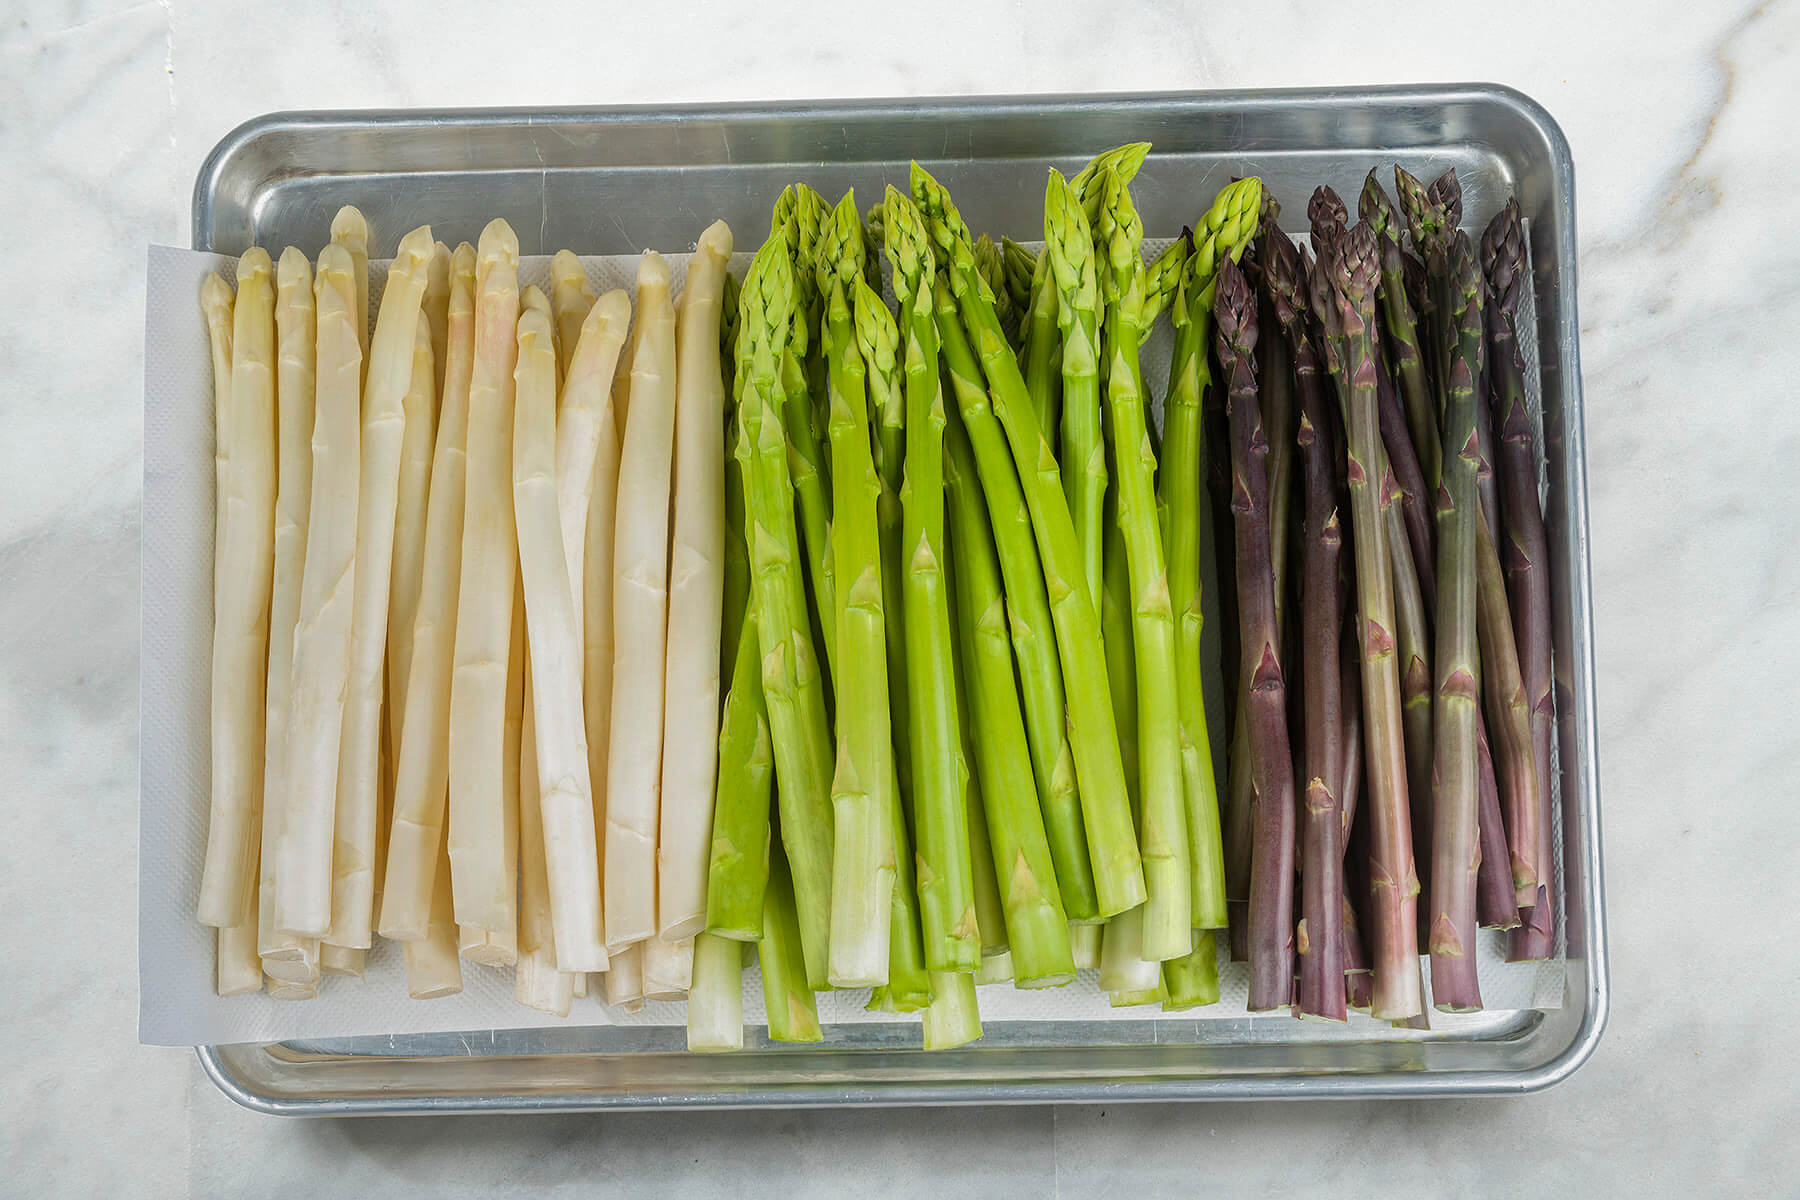 green, white, and purple asparagus